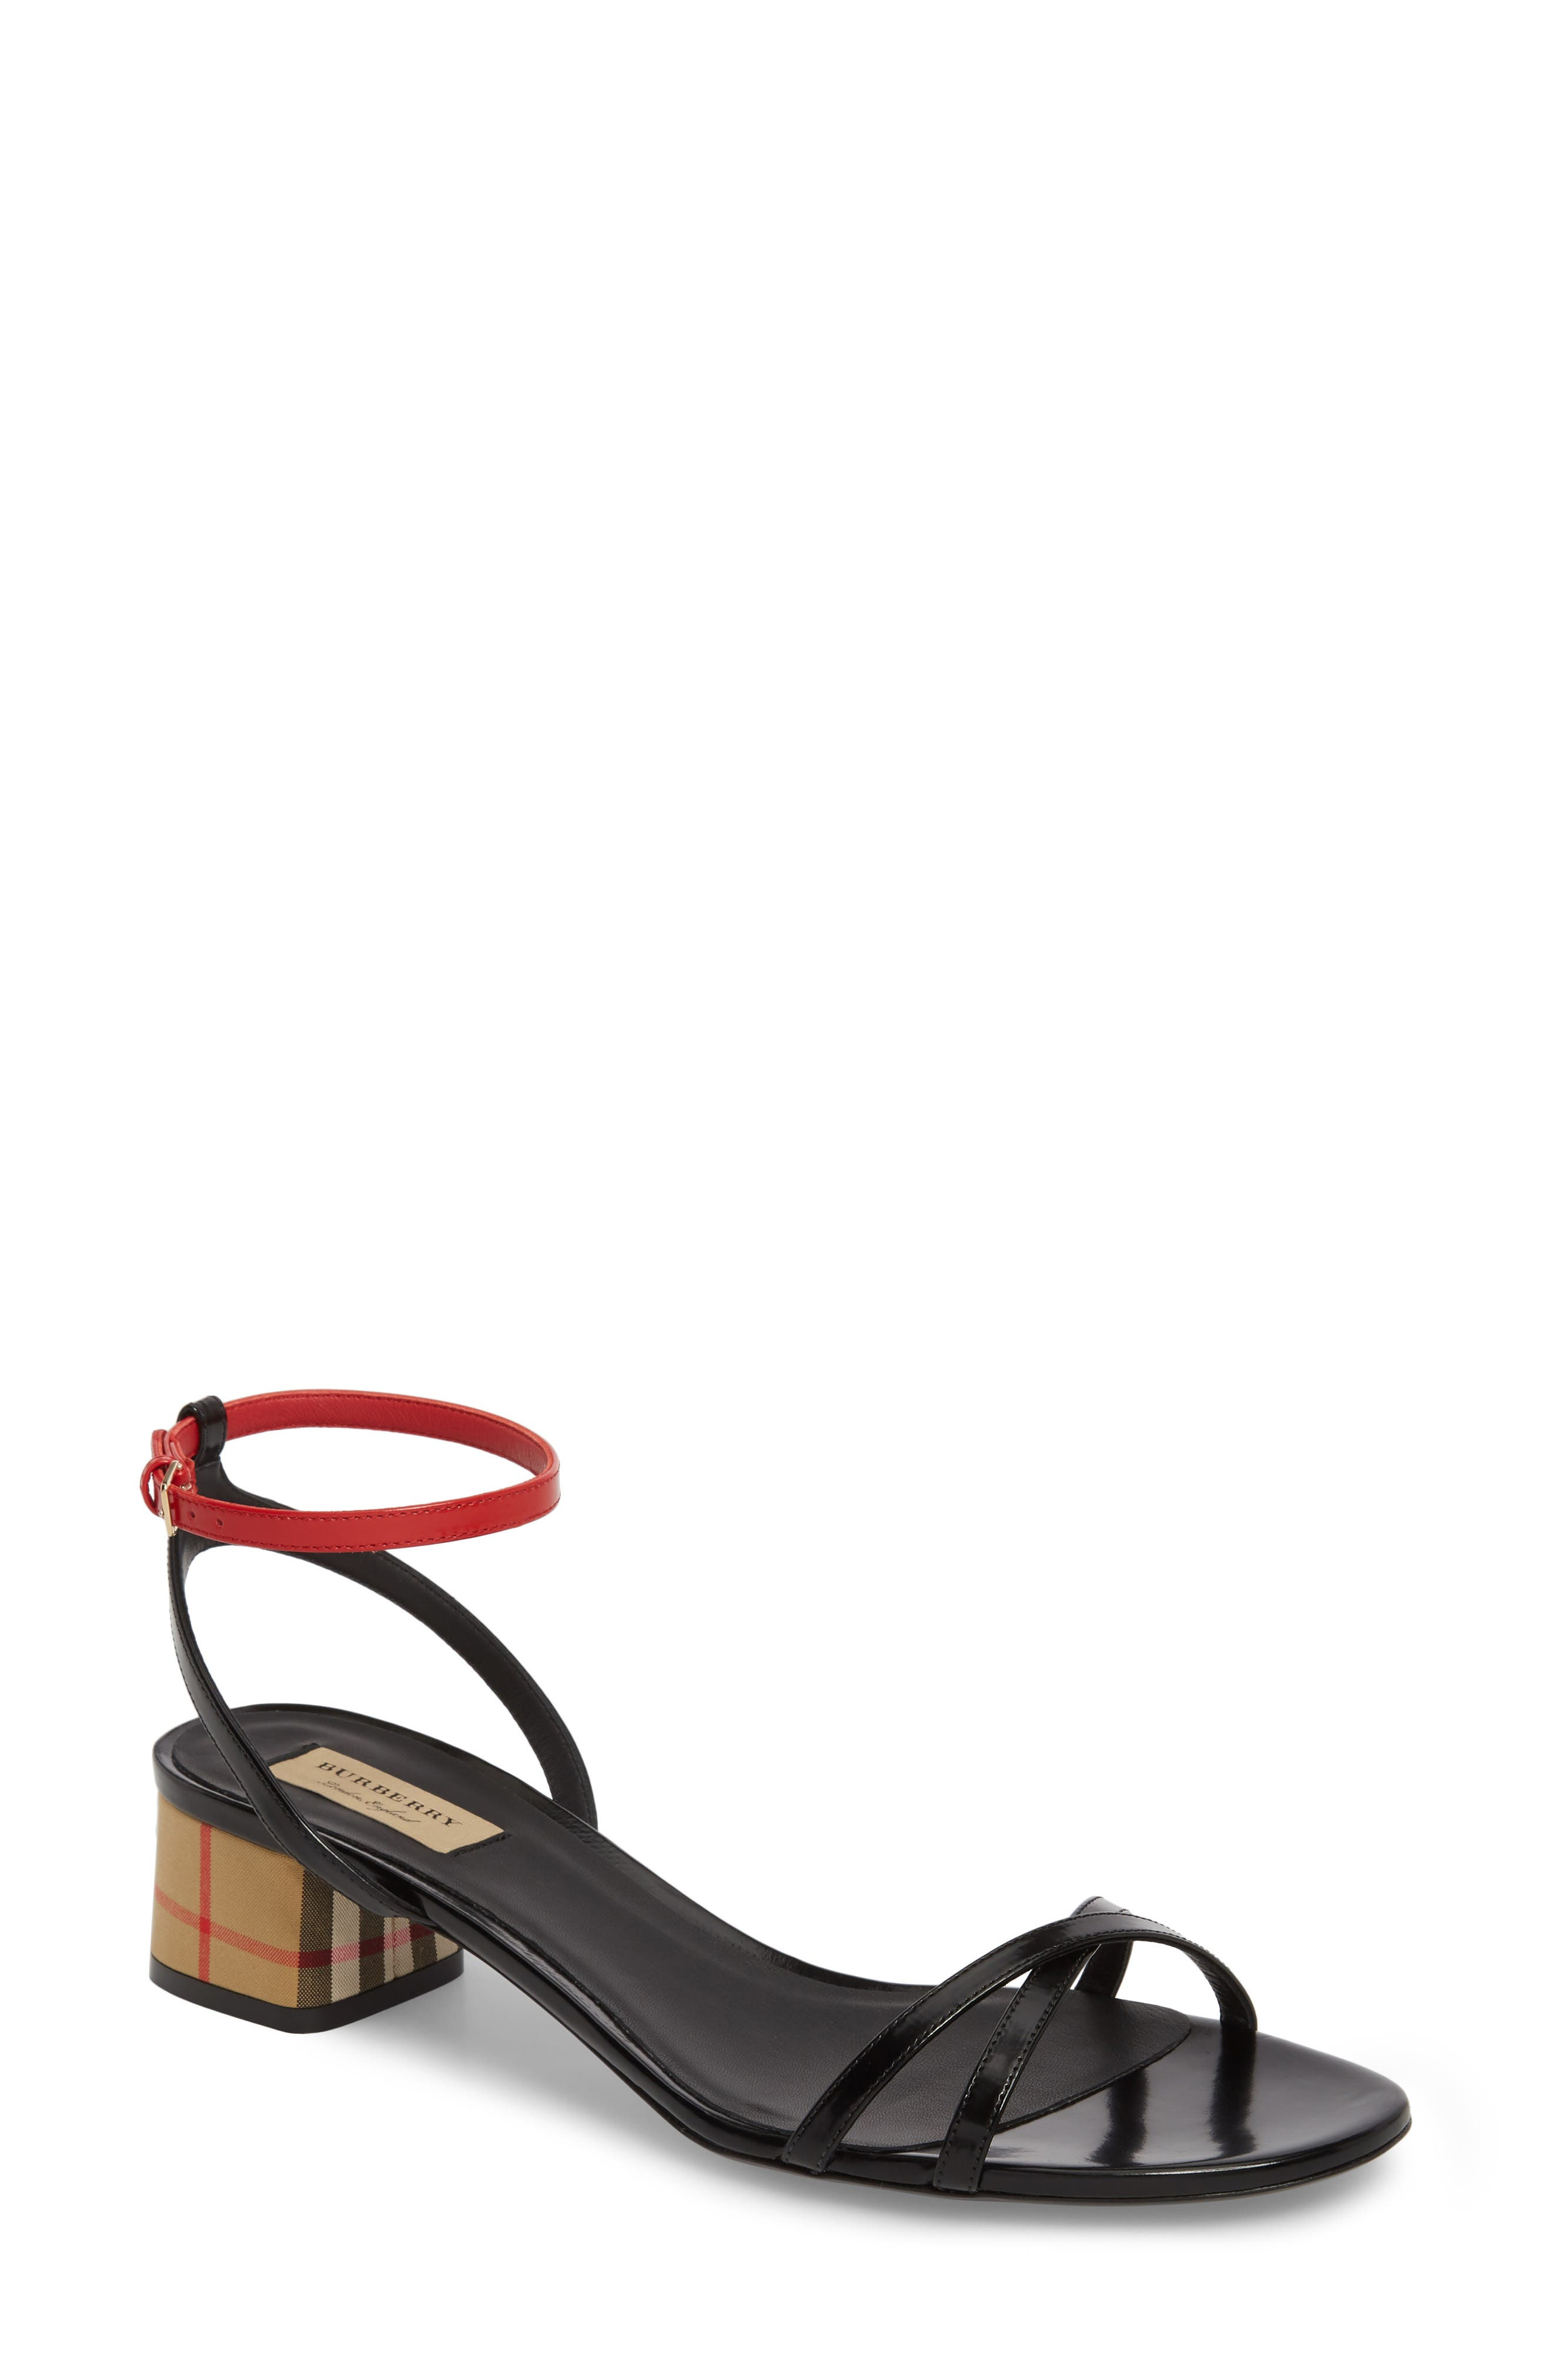 Anthea Check Ankle Strap Sandal,                         Main,                         color, 001